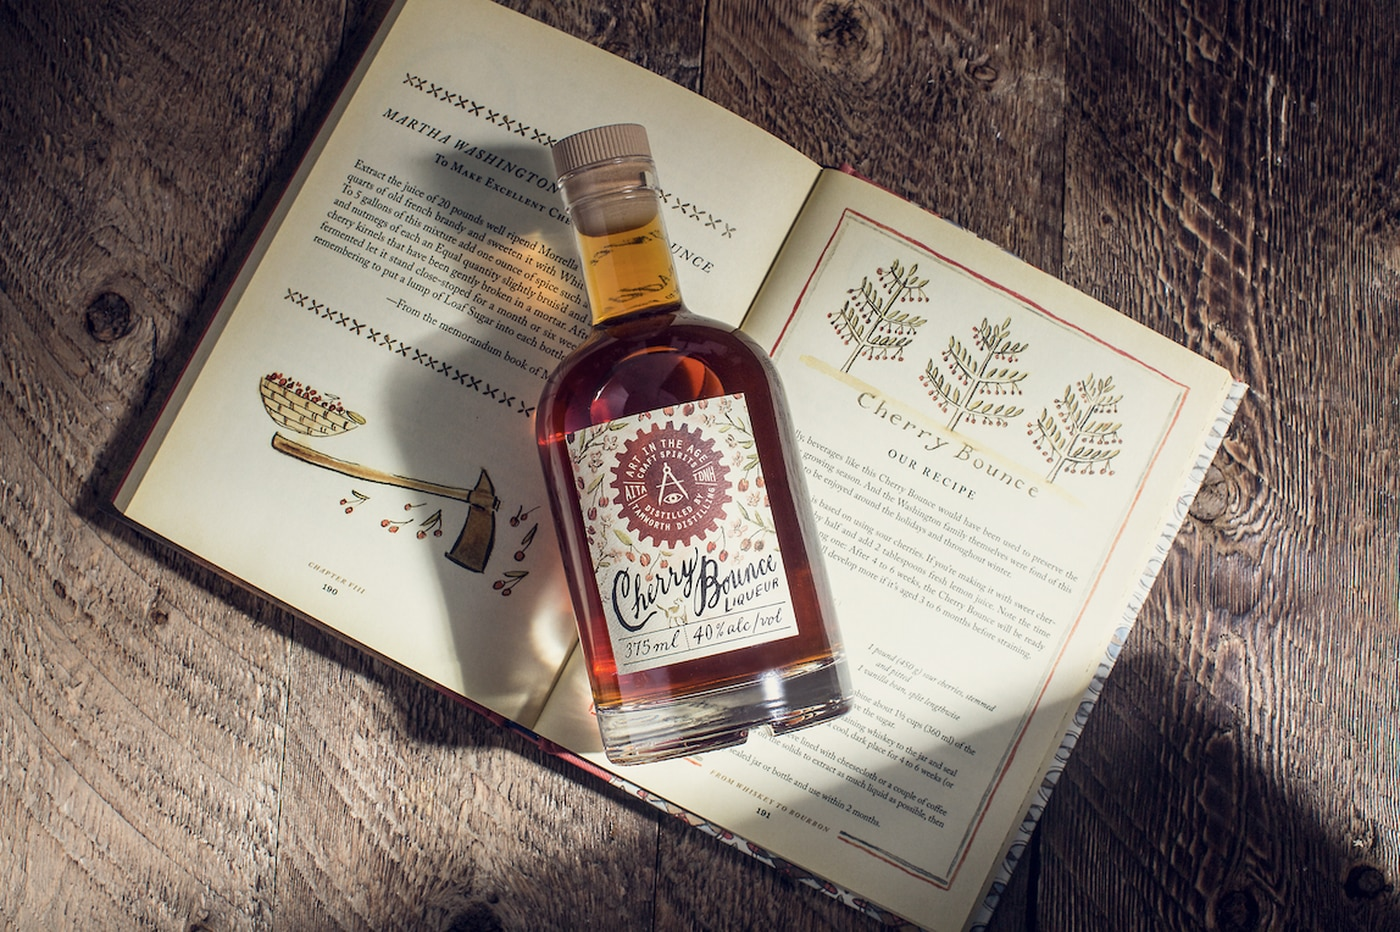 Art in the Age releases whiskey with a cherry bounce, just like Martha Washington used to make